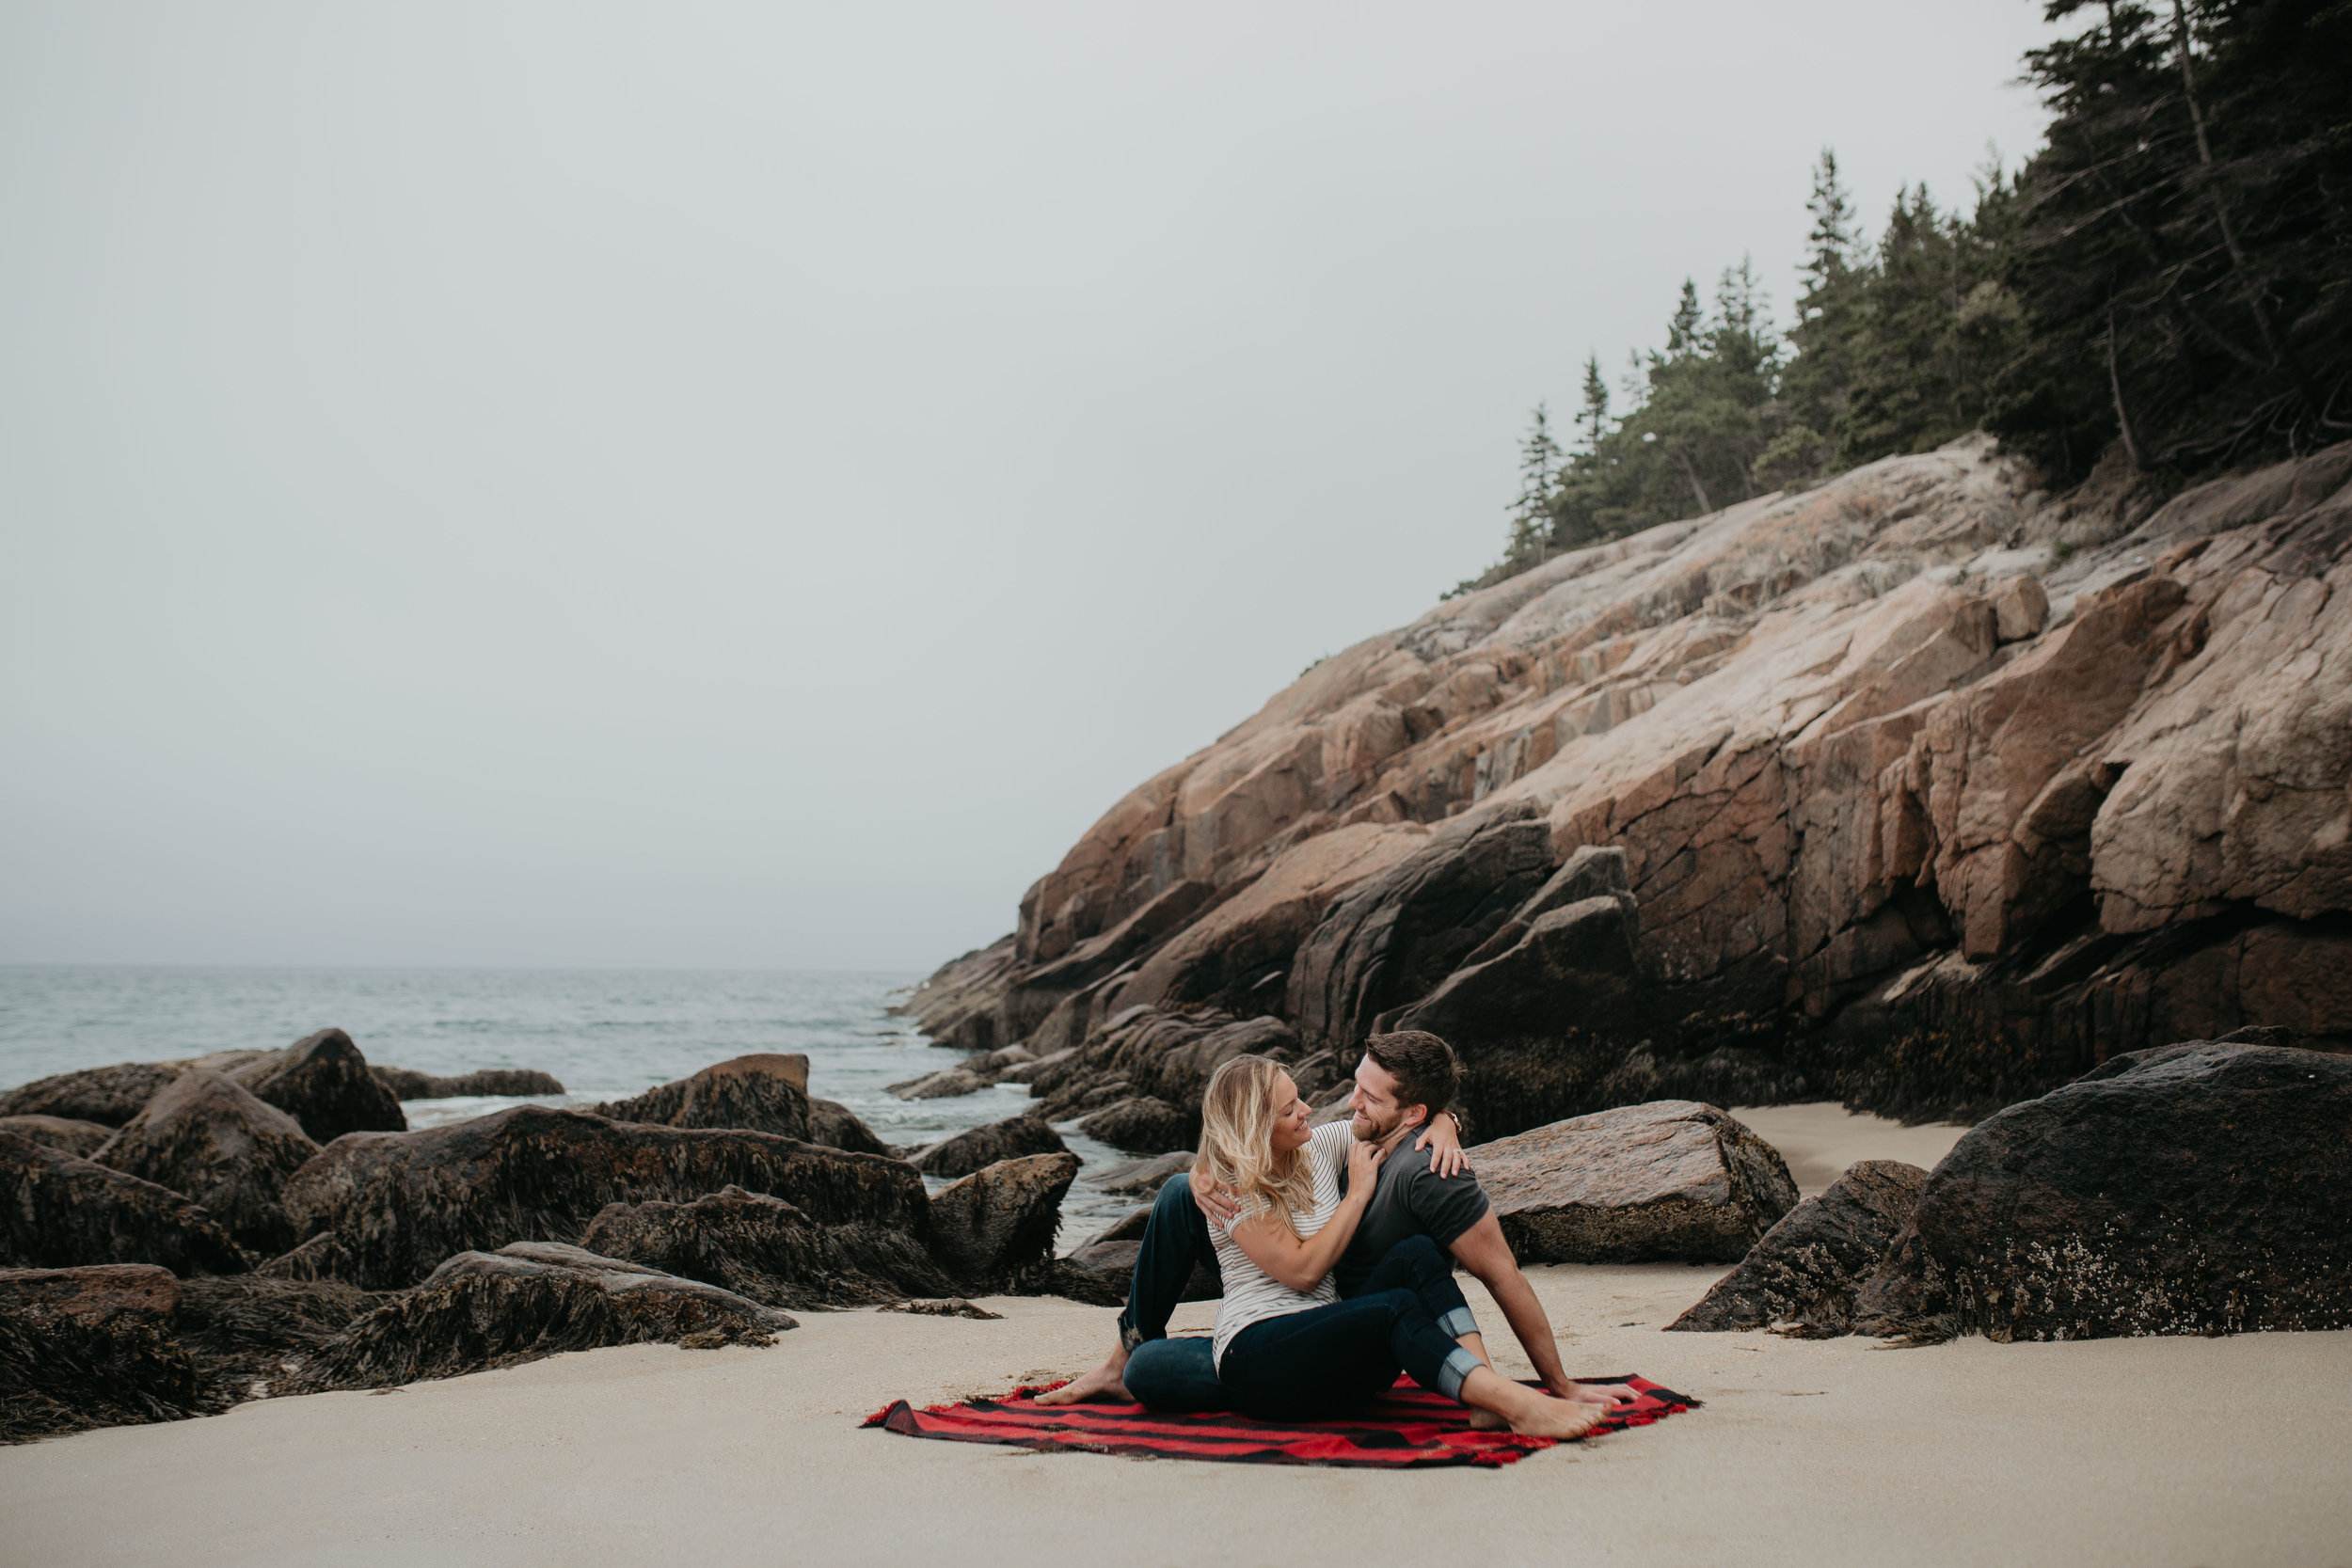 nicole-daacke-photography-acadia-national-park-adventurous-engagement-session-photos-otter-cliffs-forests-coastline-sand-beach-adventure-session-bar-harbor-mt-desert-island-elopement-fall-bass-harbor-lighthouse-wedding-maine-landscape-photographer-12.jpg